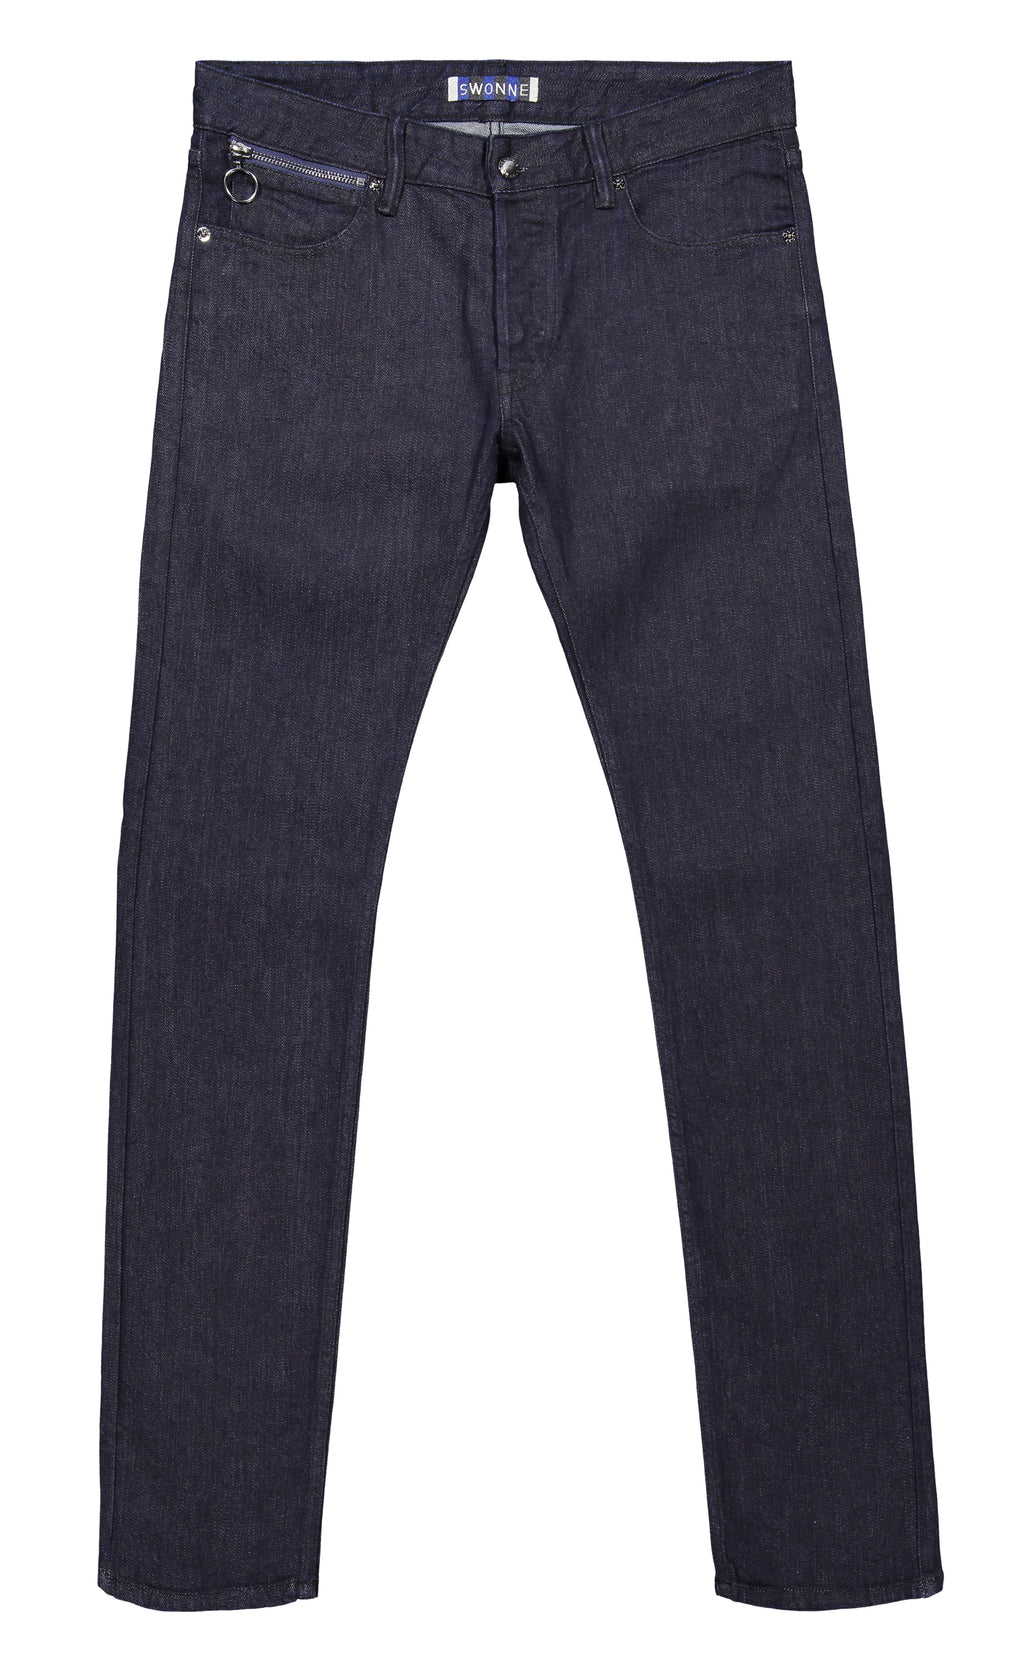 indigo jean, japanese denim, stretch, sustainable